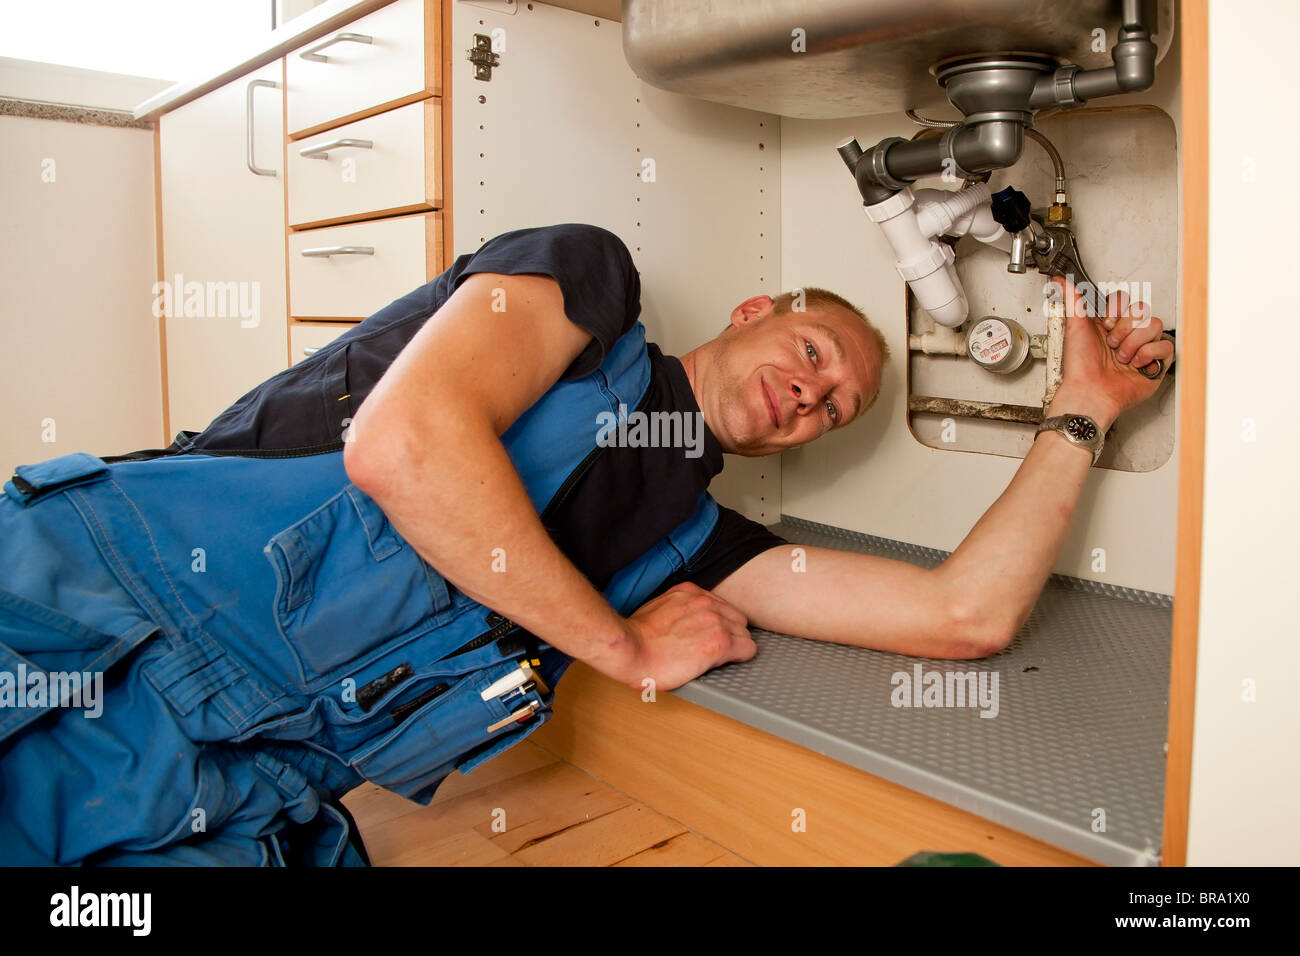 plumber stockfotos plumber bilder alamy. Black Bedroom Furniture Sets. Home Design Ideas